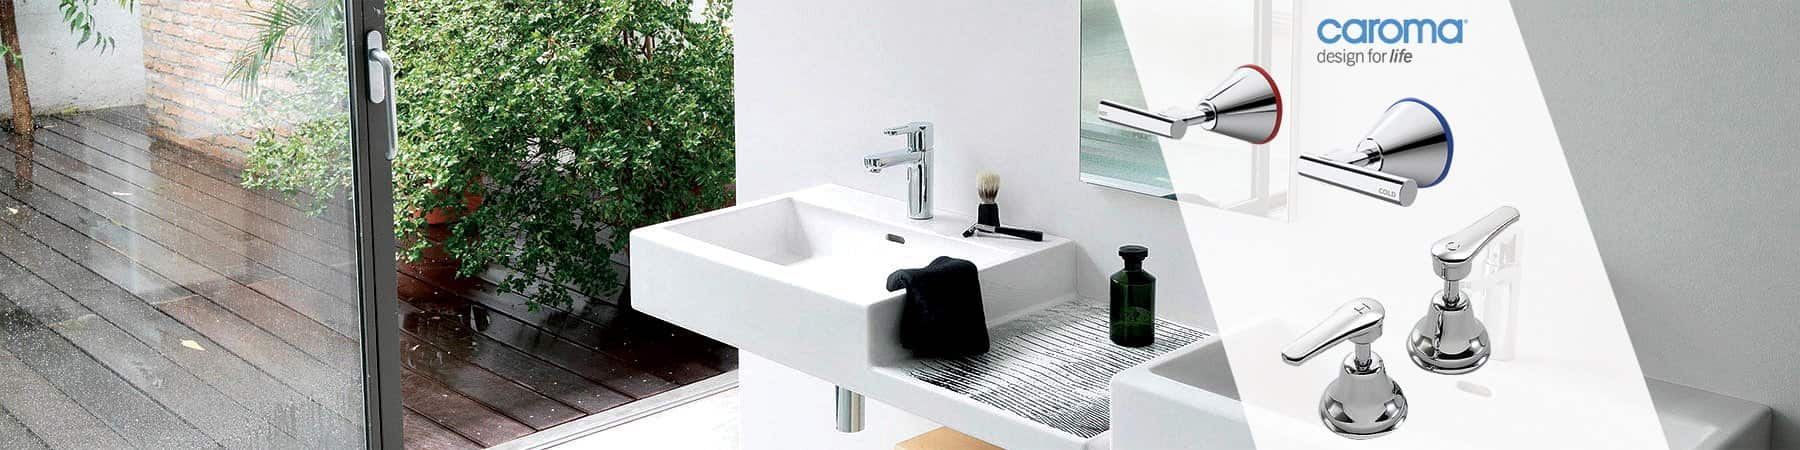 Buy Taps Online for Basin, Kitchen, Bathrooms in Sydney - Taps and More